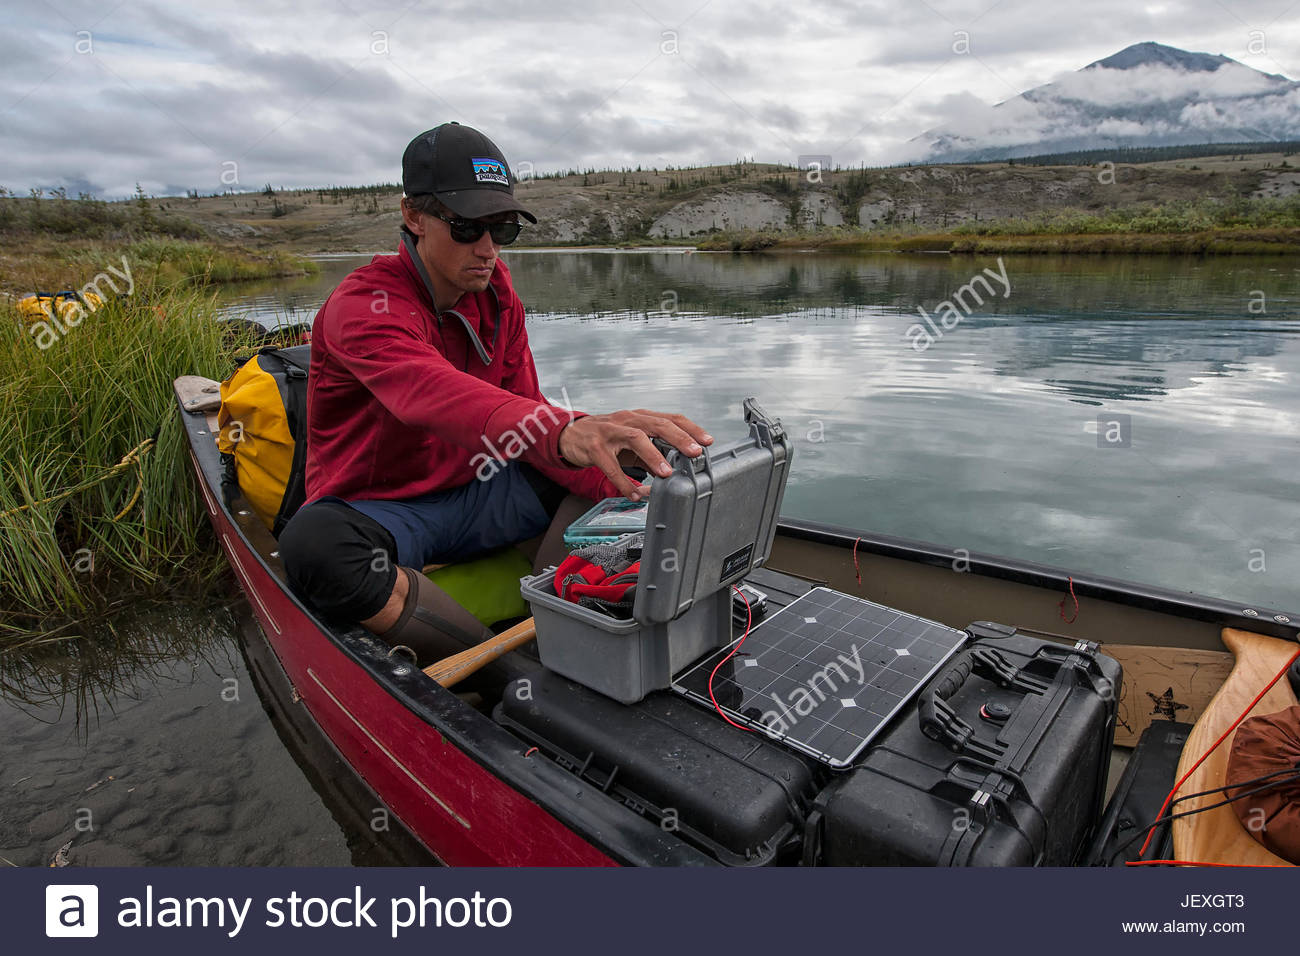 Videographer filming on the Wind River. Also, charging batteries using a solar charging system from our sponsors - Stock Image